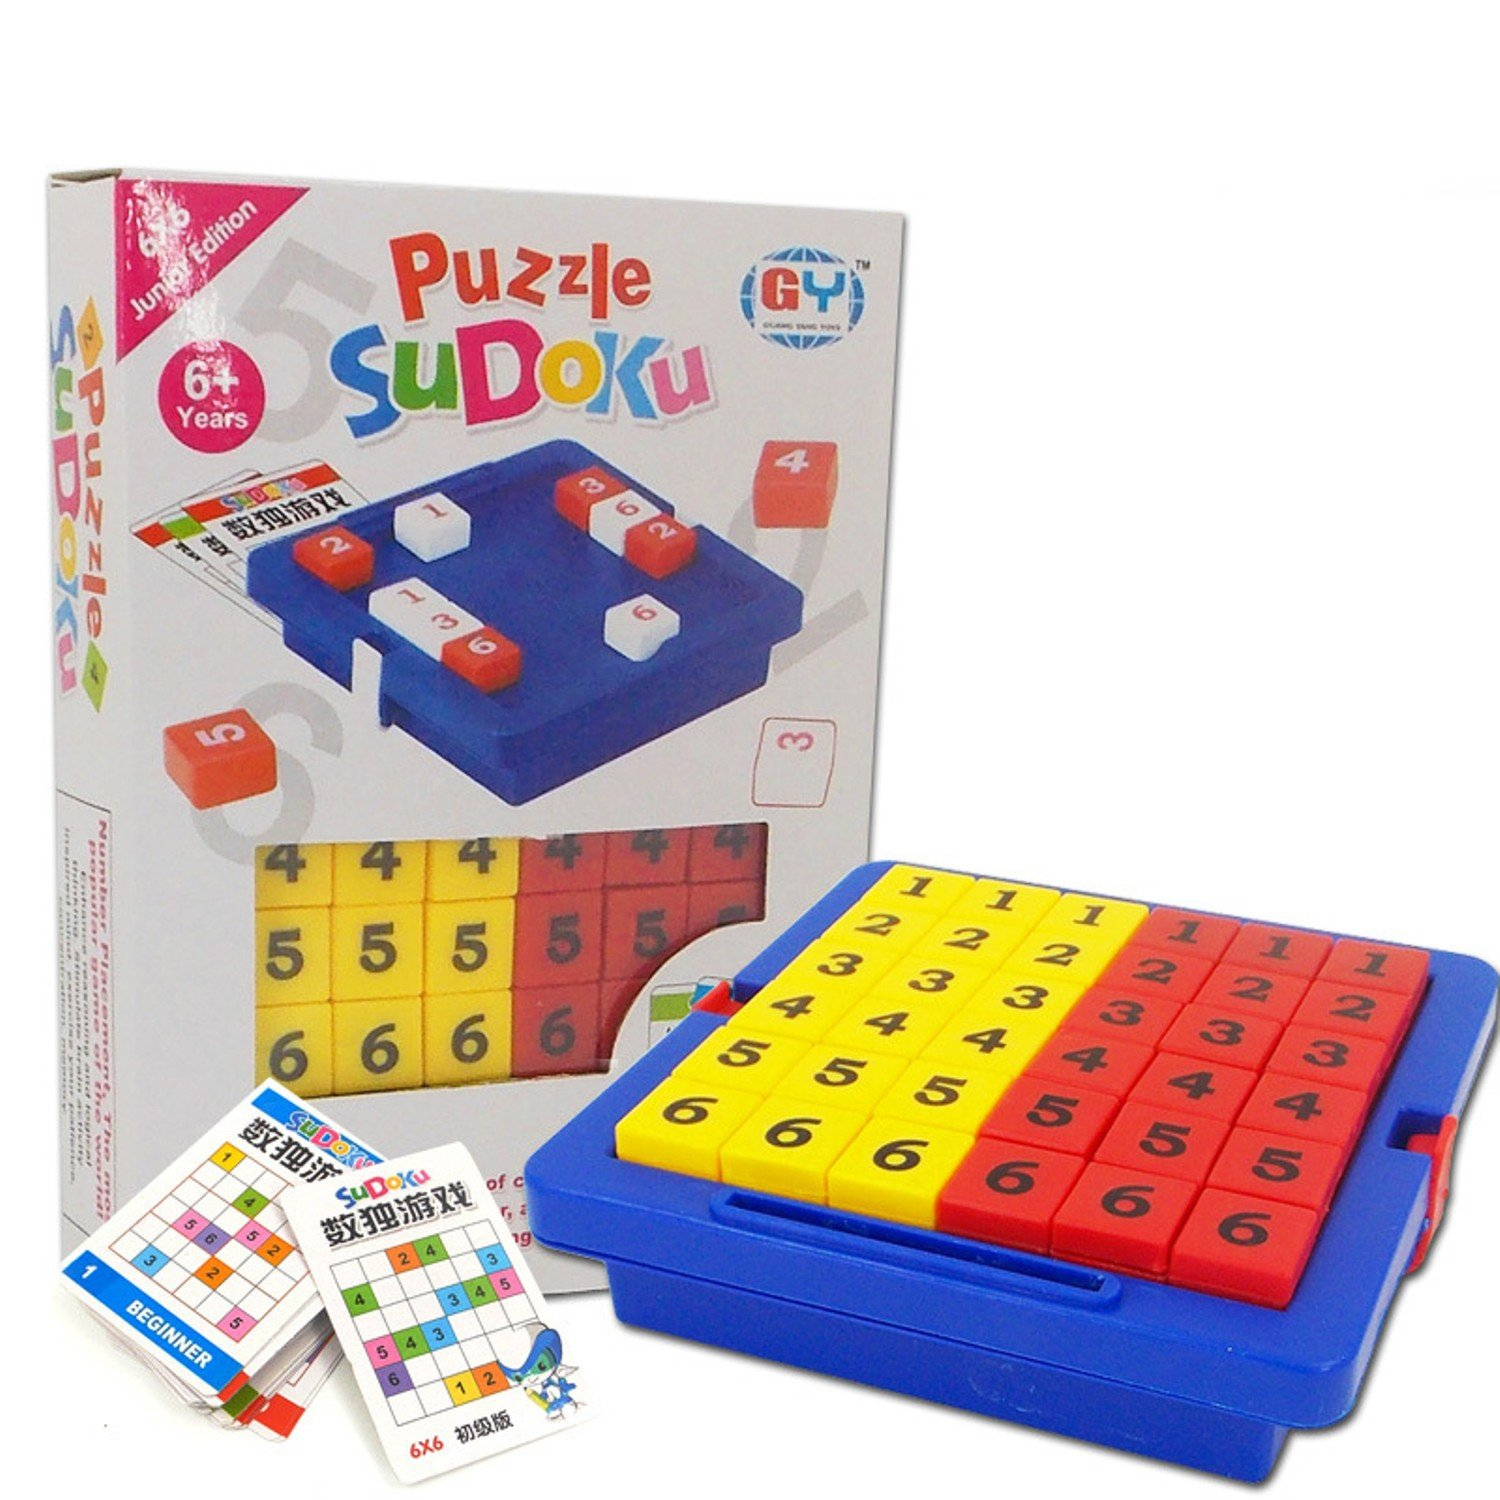 Primary Sudoku Cube Number Game Puzzles Table Learning Educational Toys Toy For Children Adult Logical Thinking